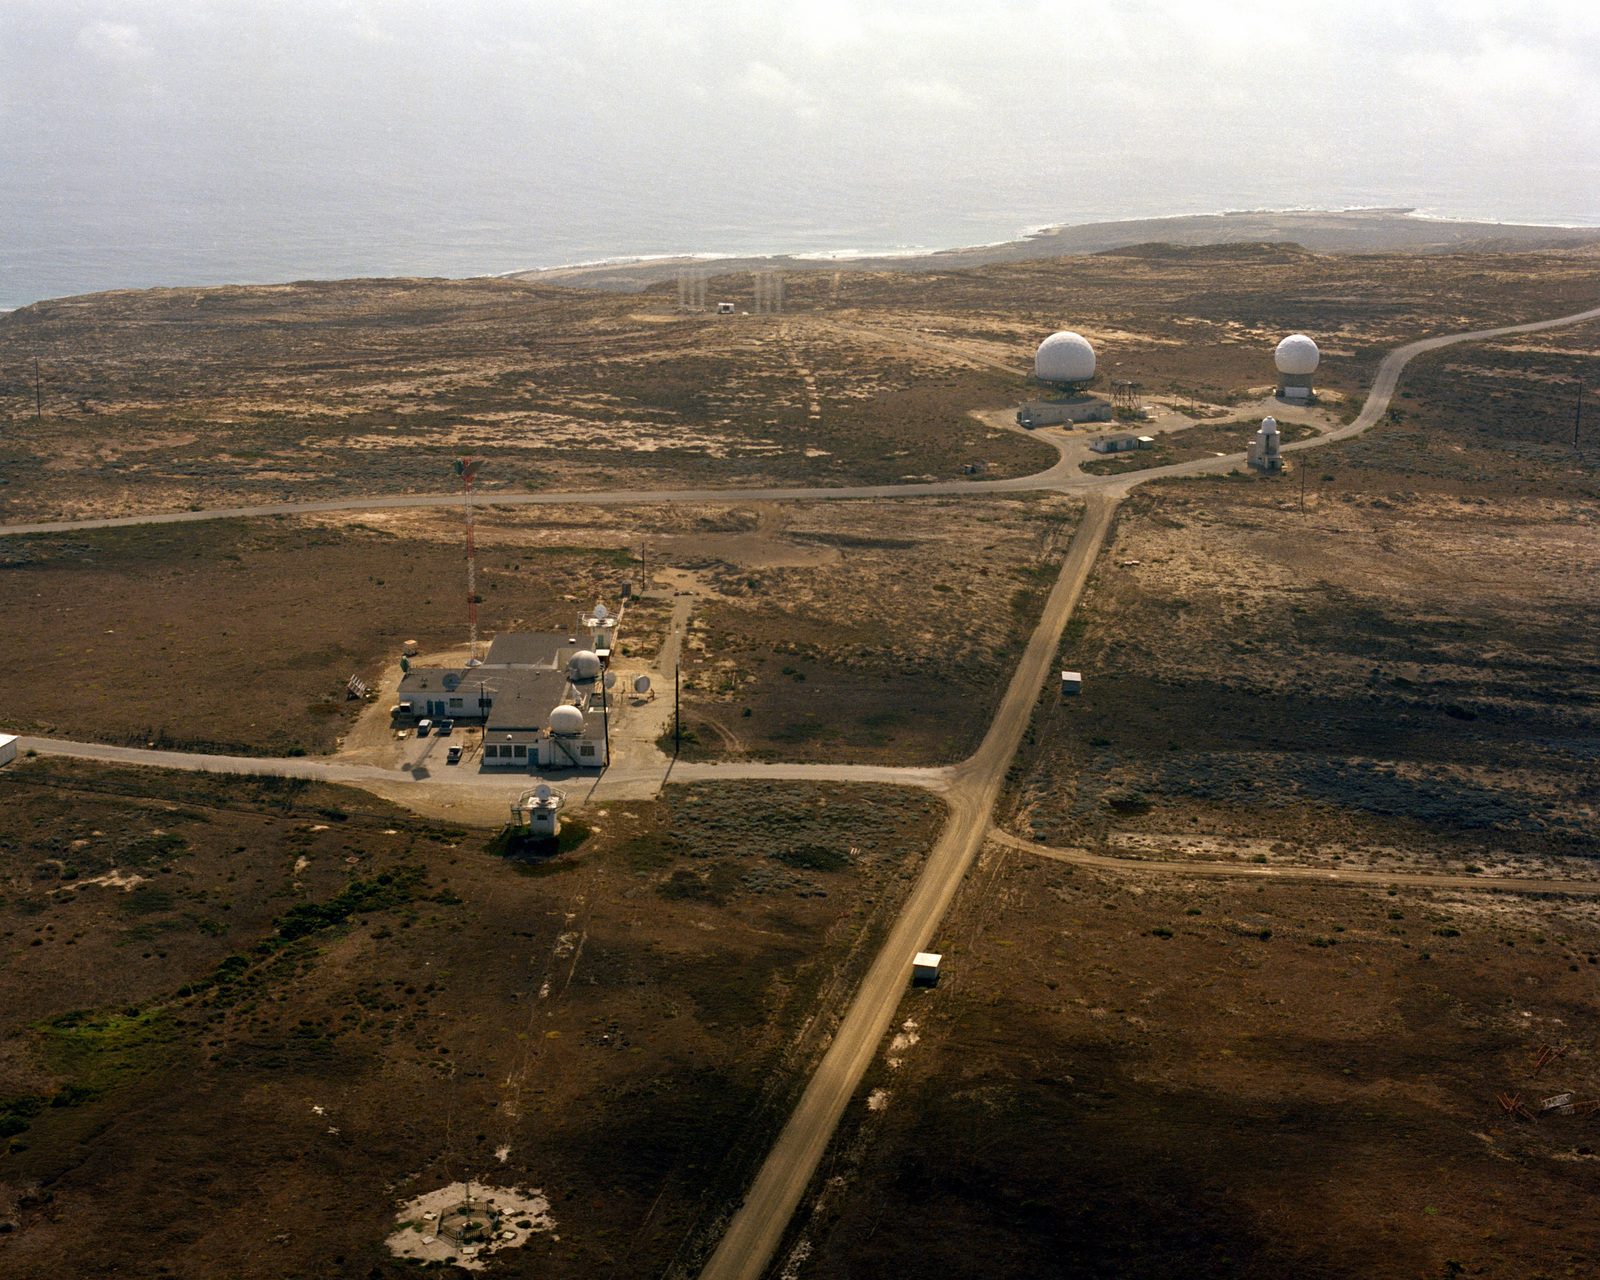 An aerial view of San Nicolas Island with FPS-16 and FPQ-10